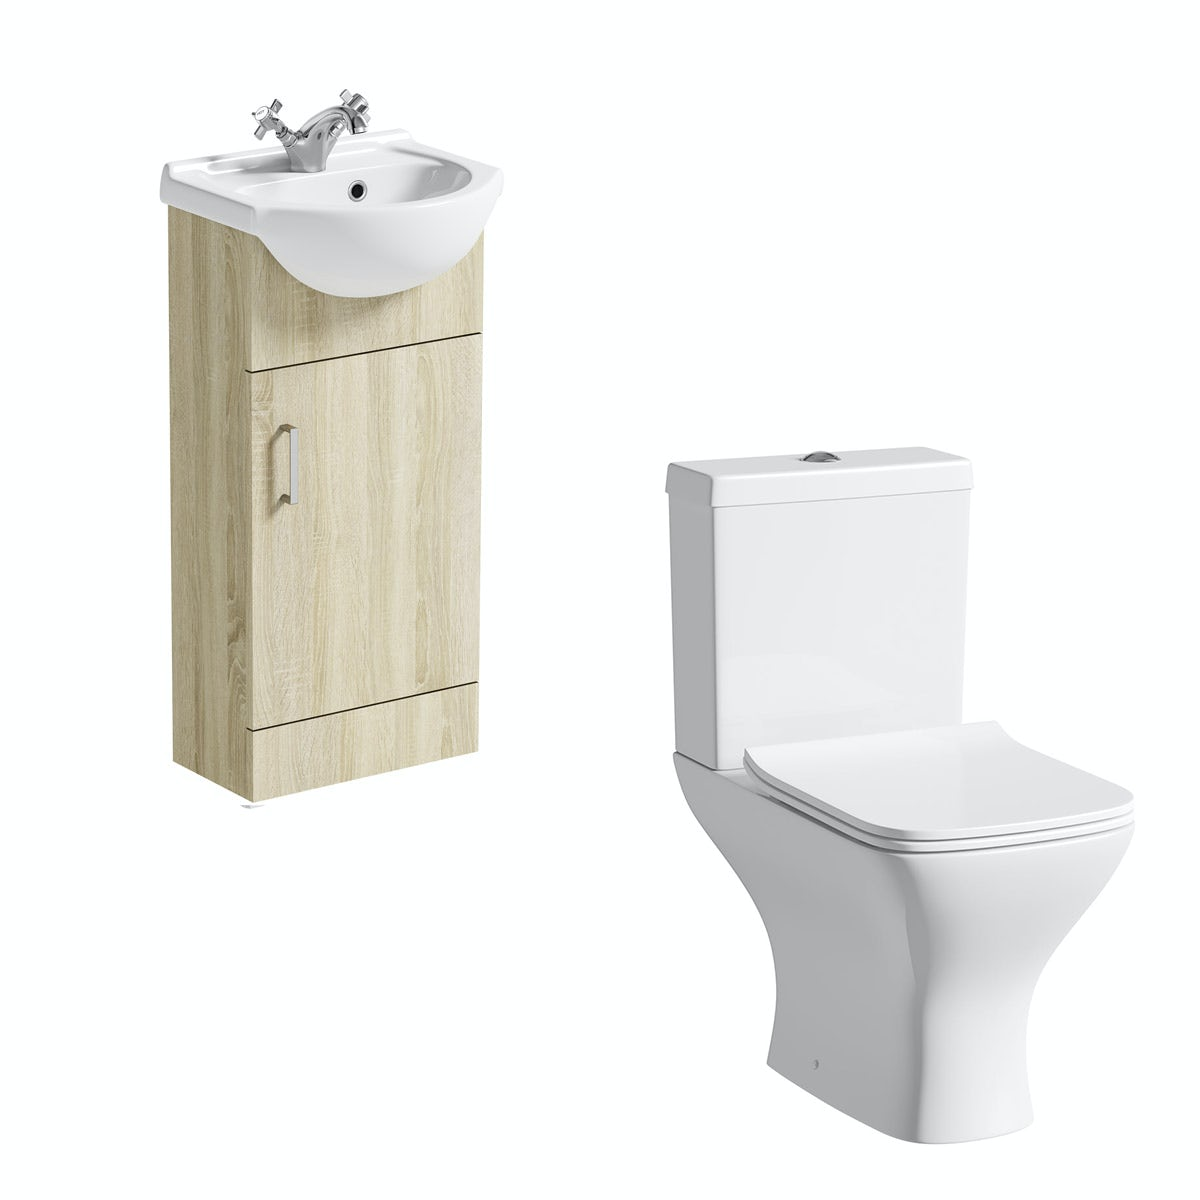 Orchard Eden oak cloakroom suite with contemporary square close coupled toilet